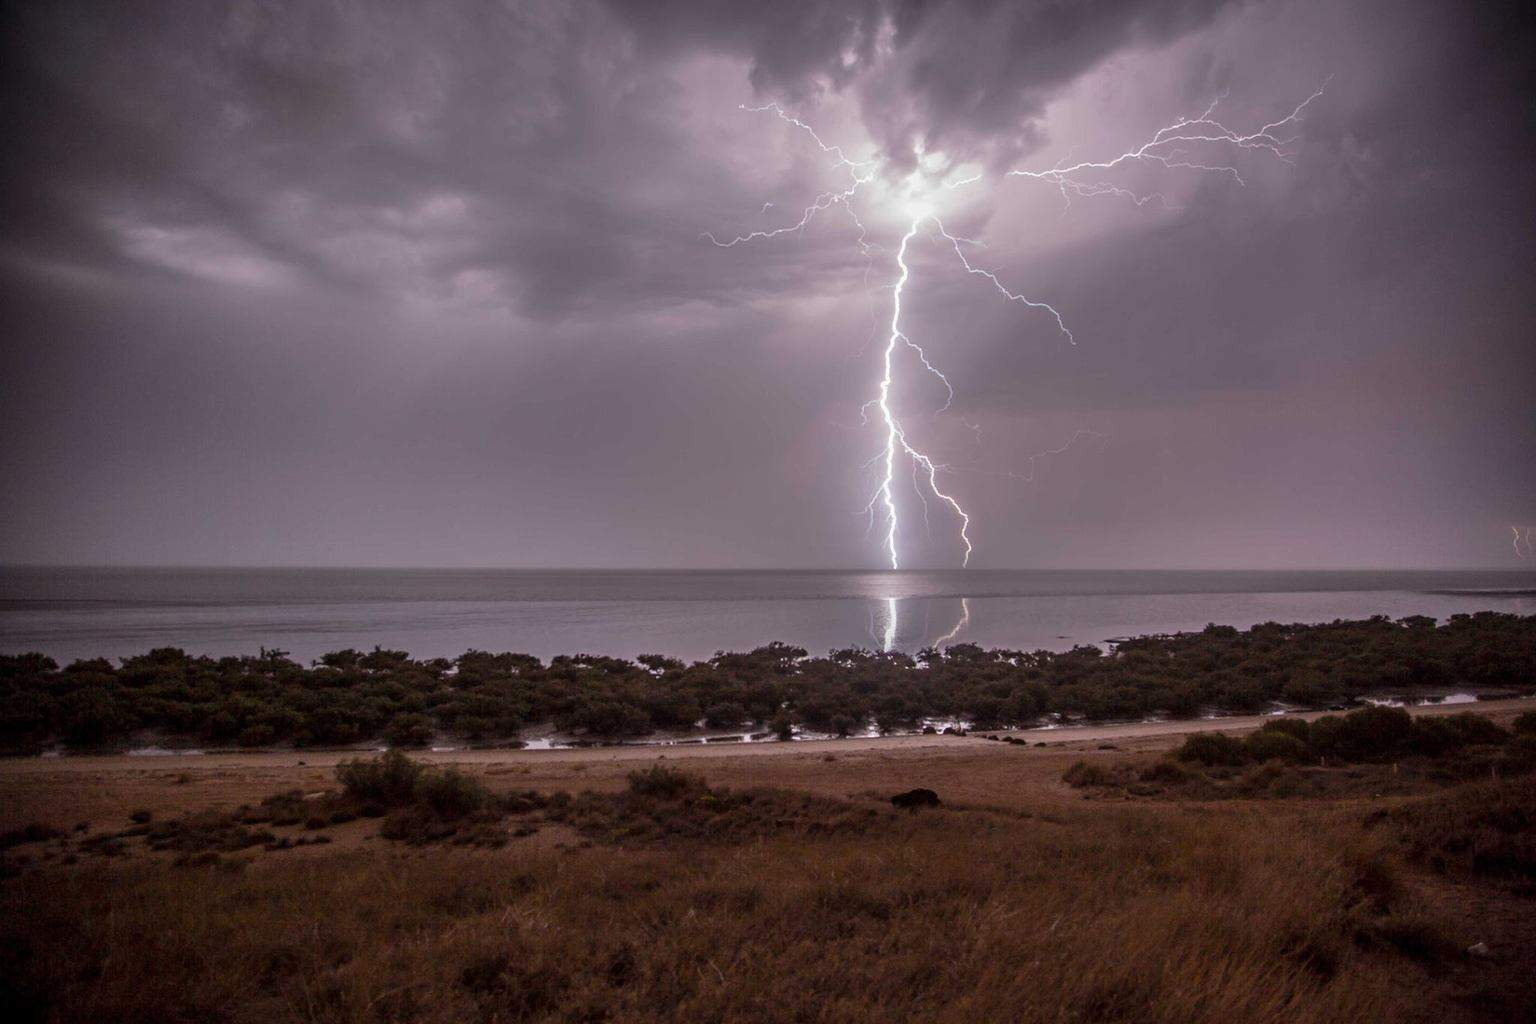 I am counting down the days until the next storm season kicks off in Karratha, Western Australia. This is a shot from earlier this year at a view point a few hundred meters from my house..